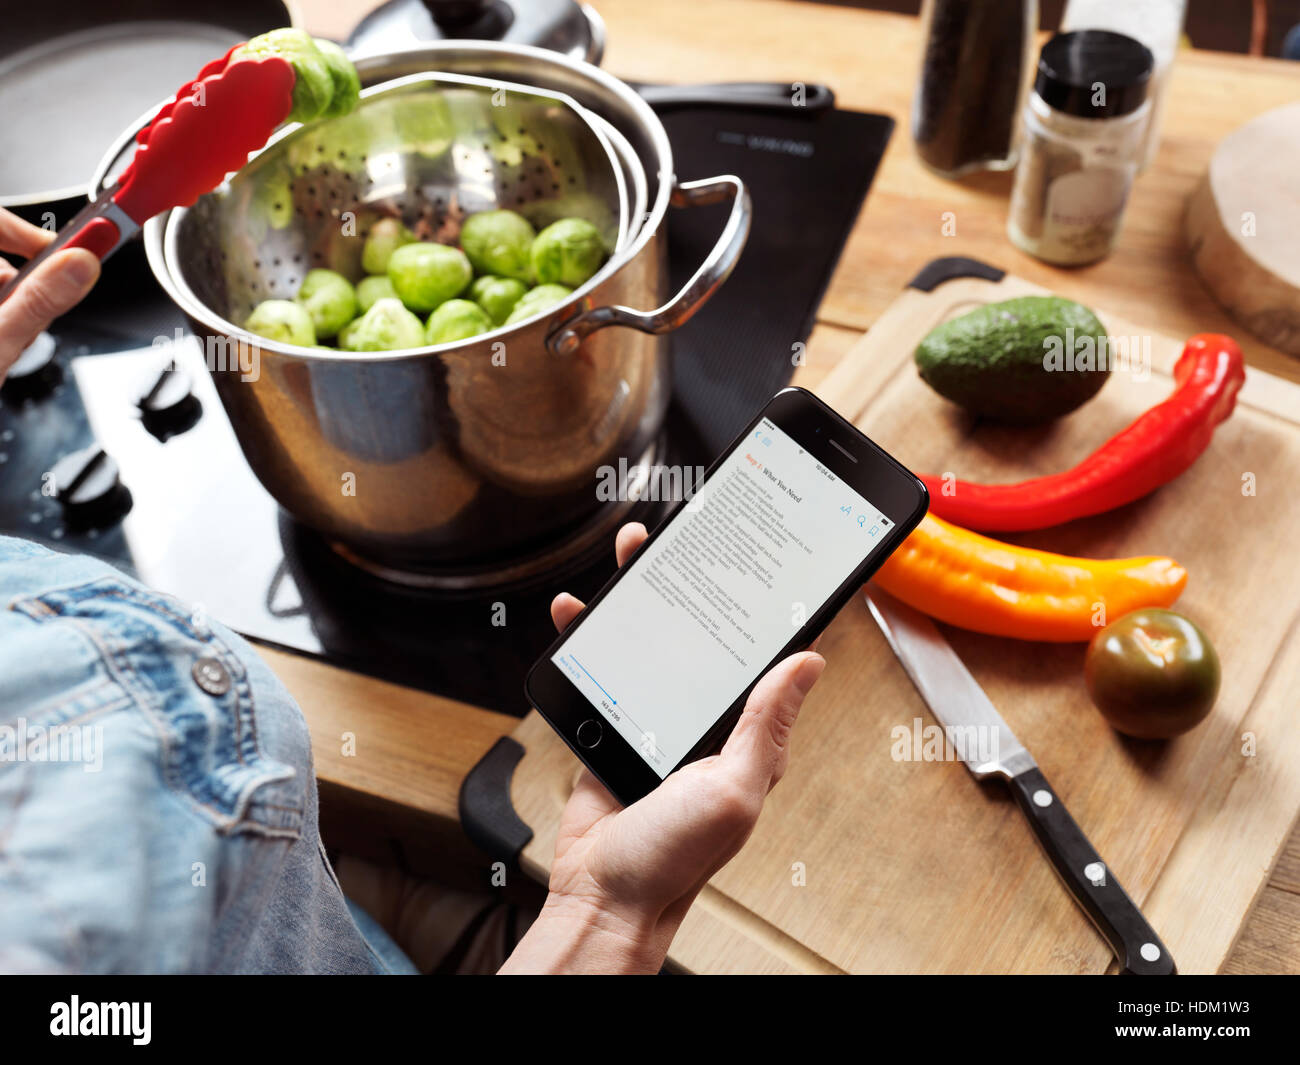 Woman cooking in the kitchen reading a recipe from iPhone 7 in her hand - Stock Image